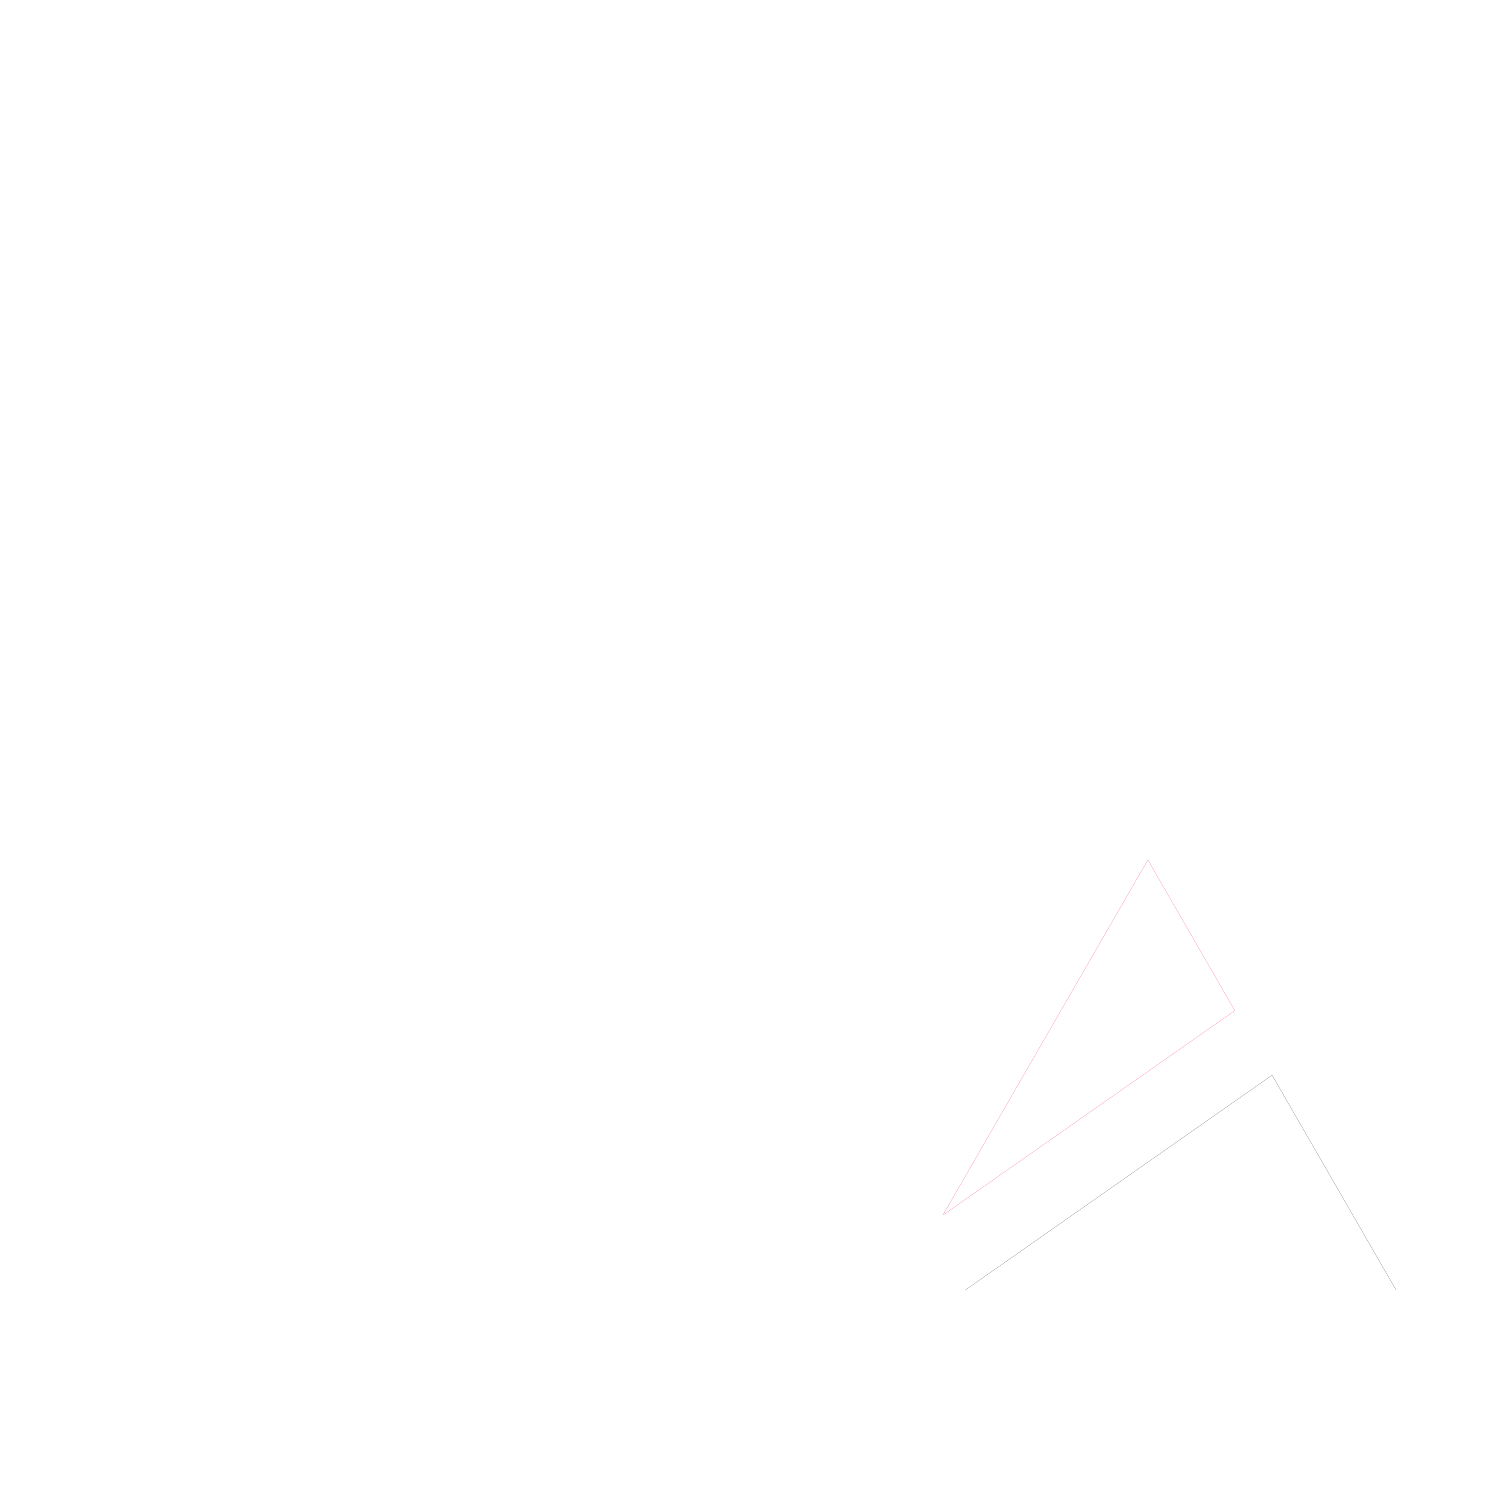 Light spark png. Foundry we bring heat